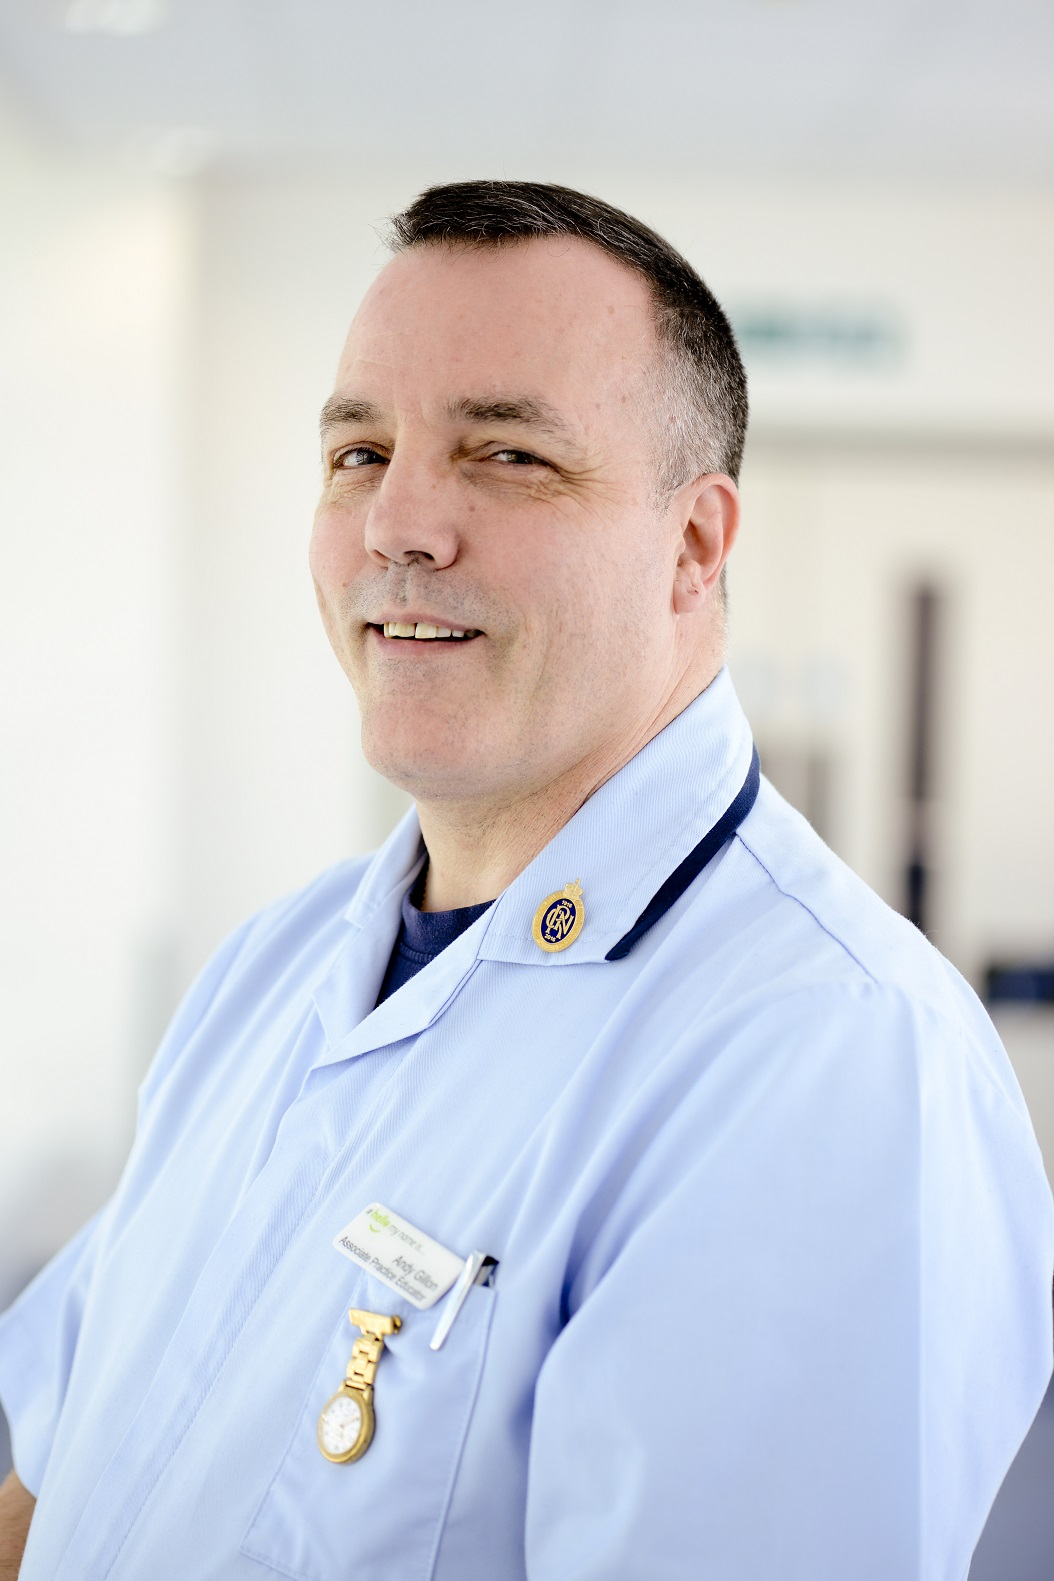 Andy Gillon has dedicated 30 years to Portsmouth Hospitals